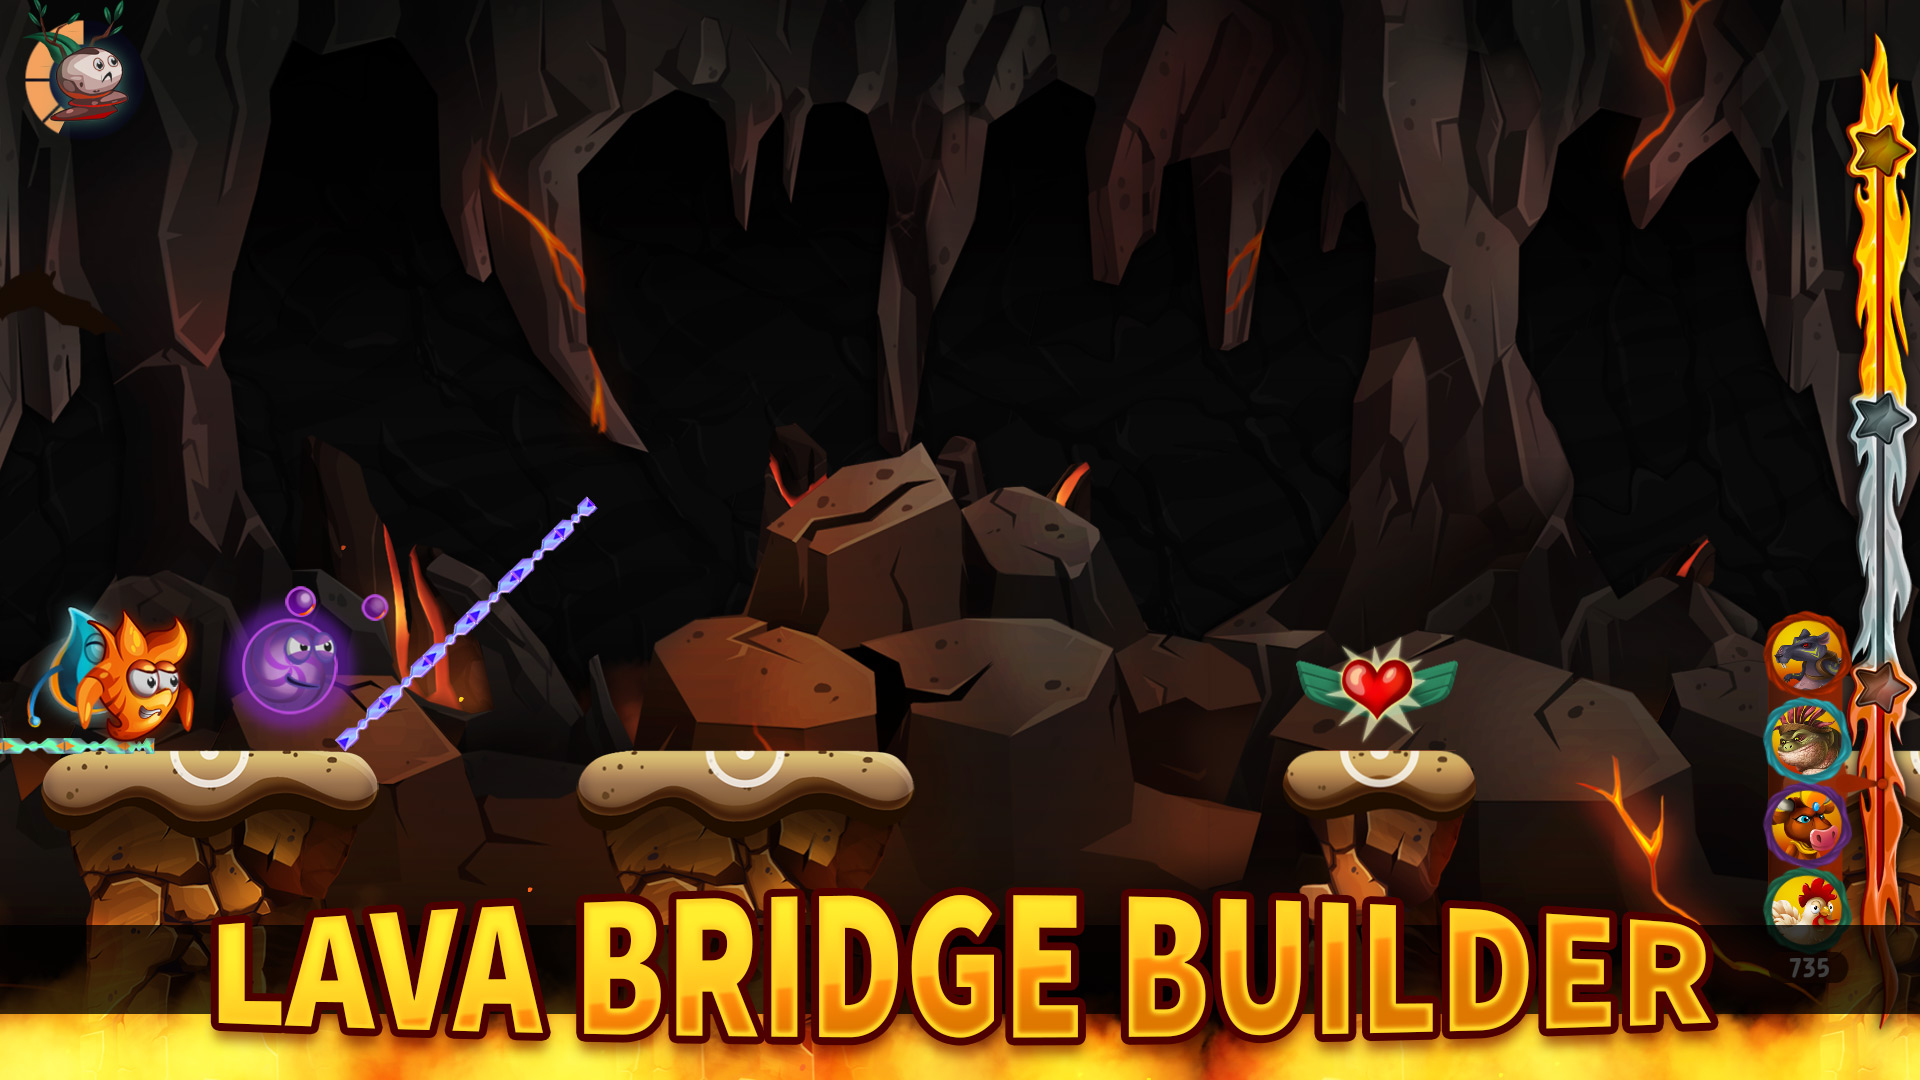 PP_LAVA_BRIDGE_BUILDER